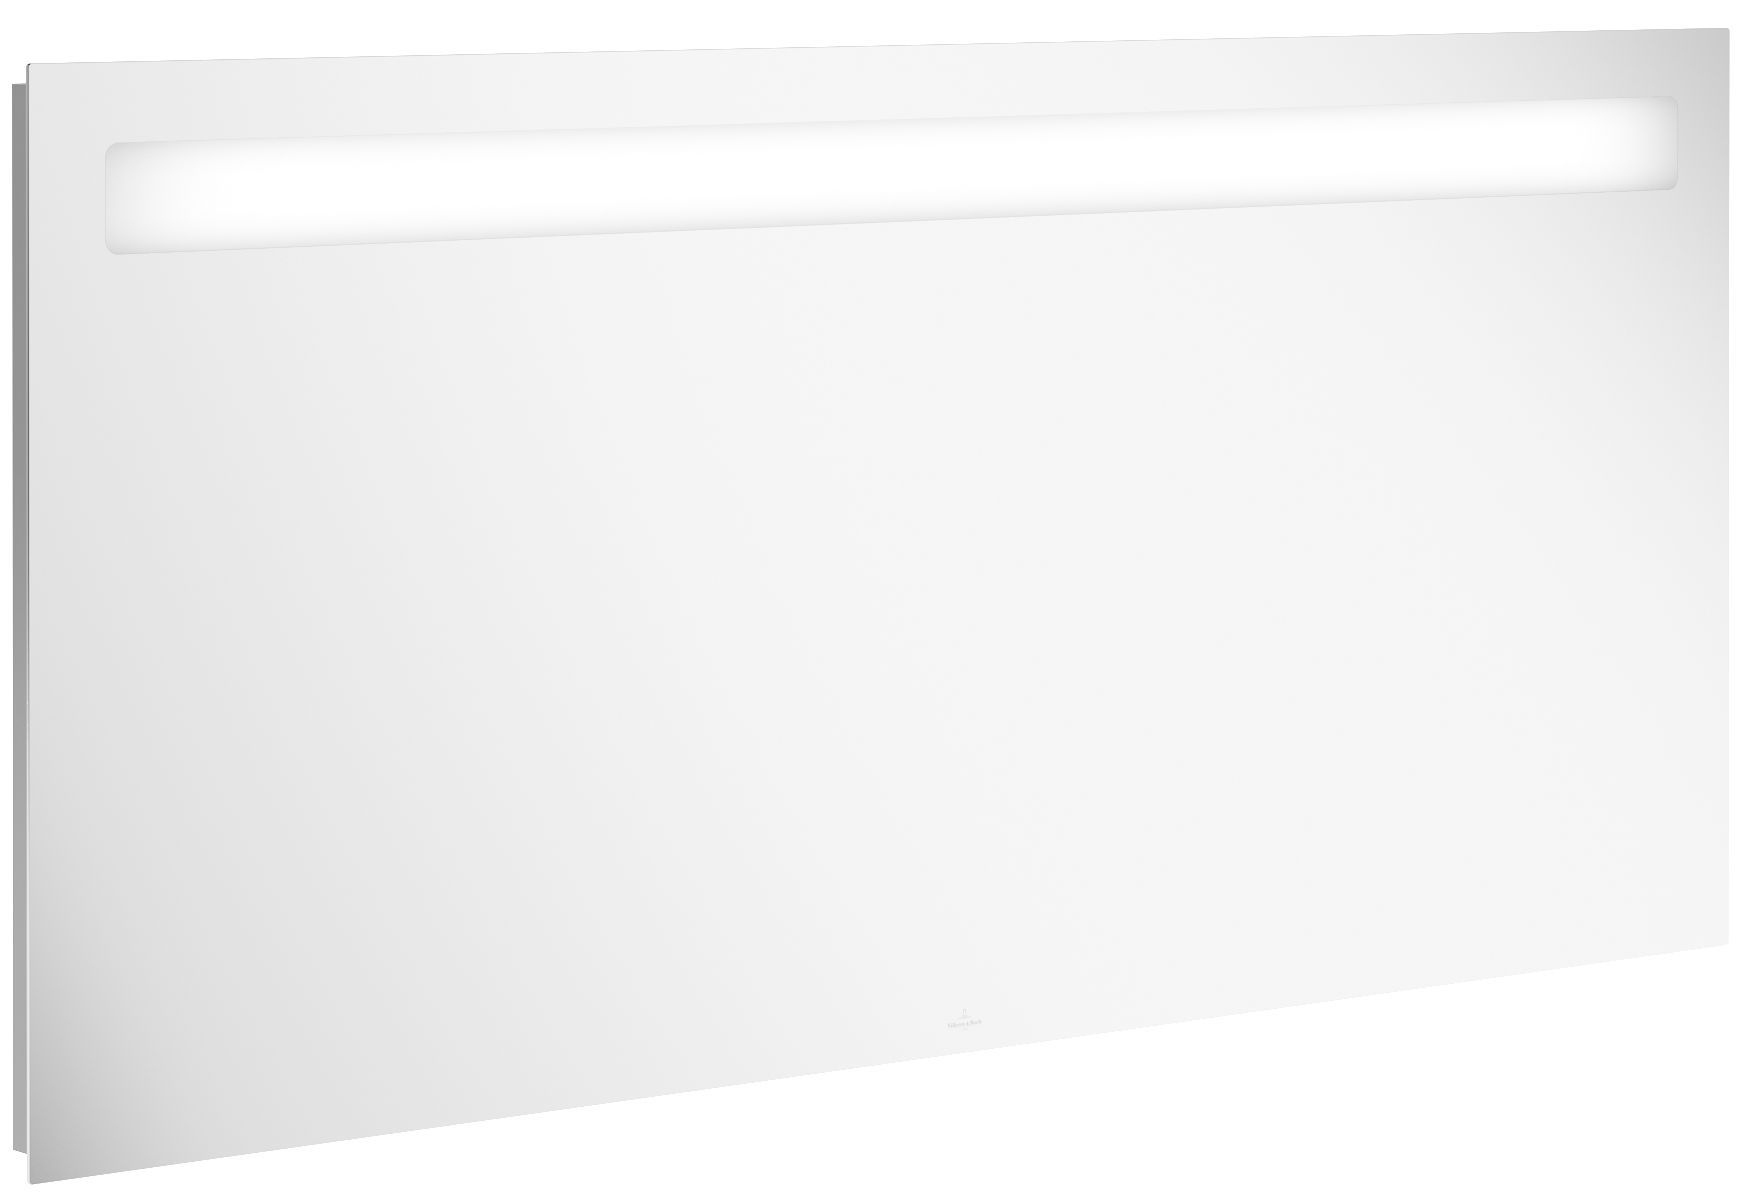 Villeroy & Boch More to See 14 Spiegel mit LED-Beleuchtung B: 140 cm A4291400